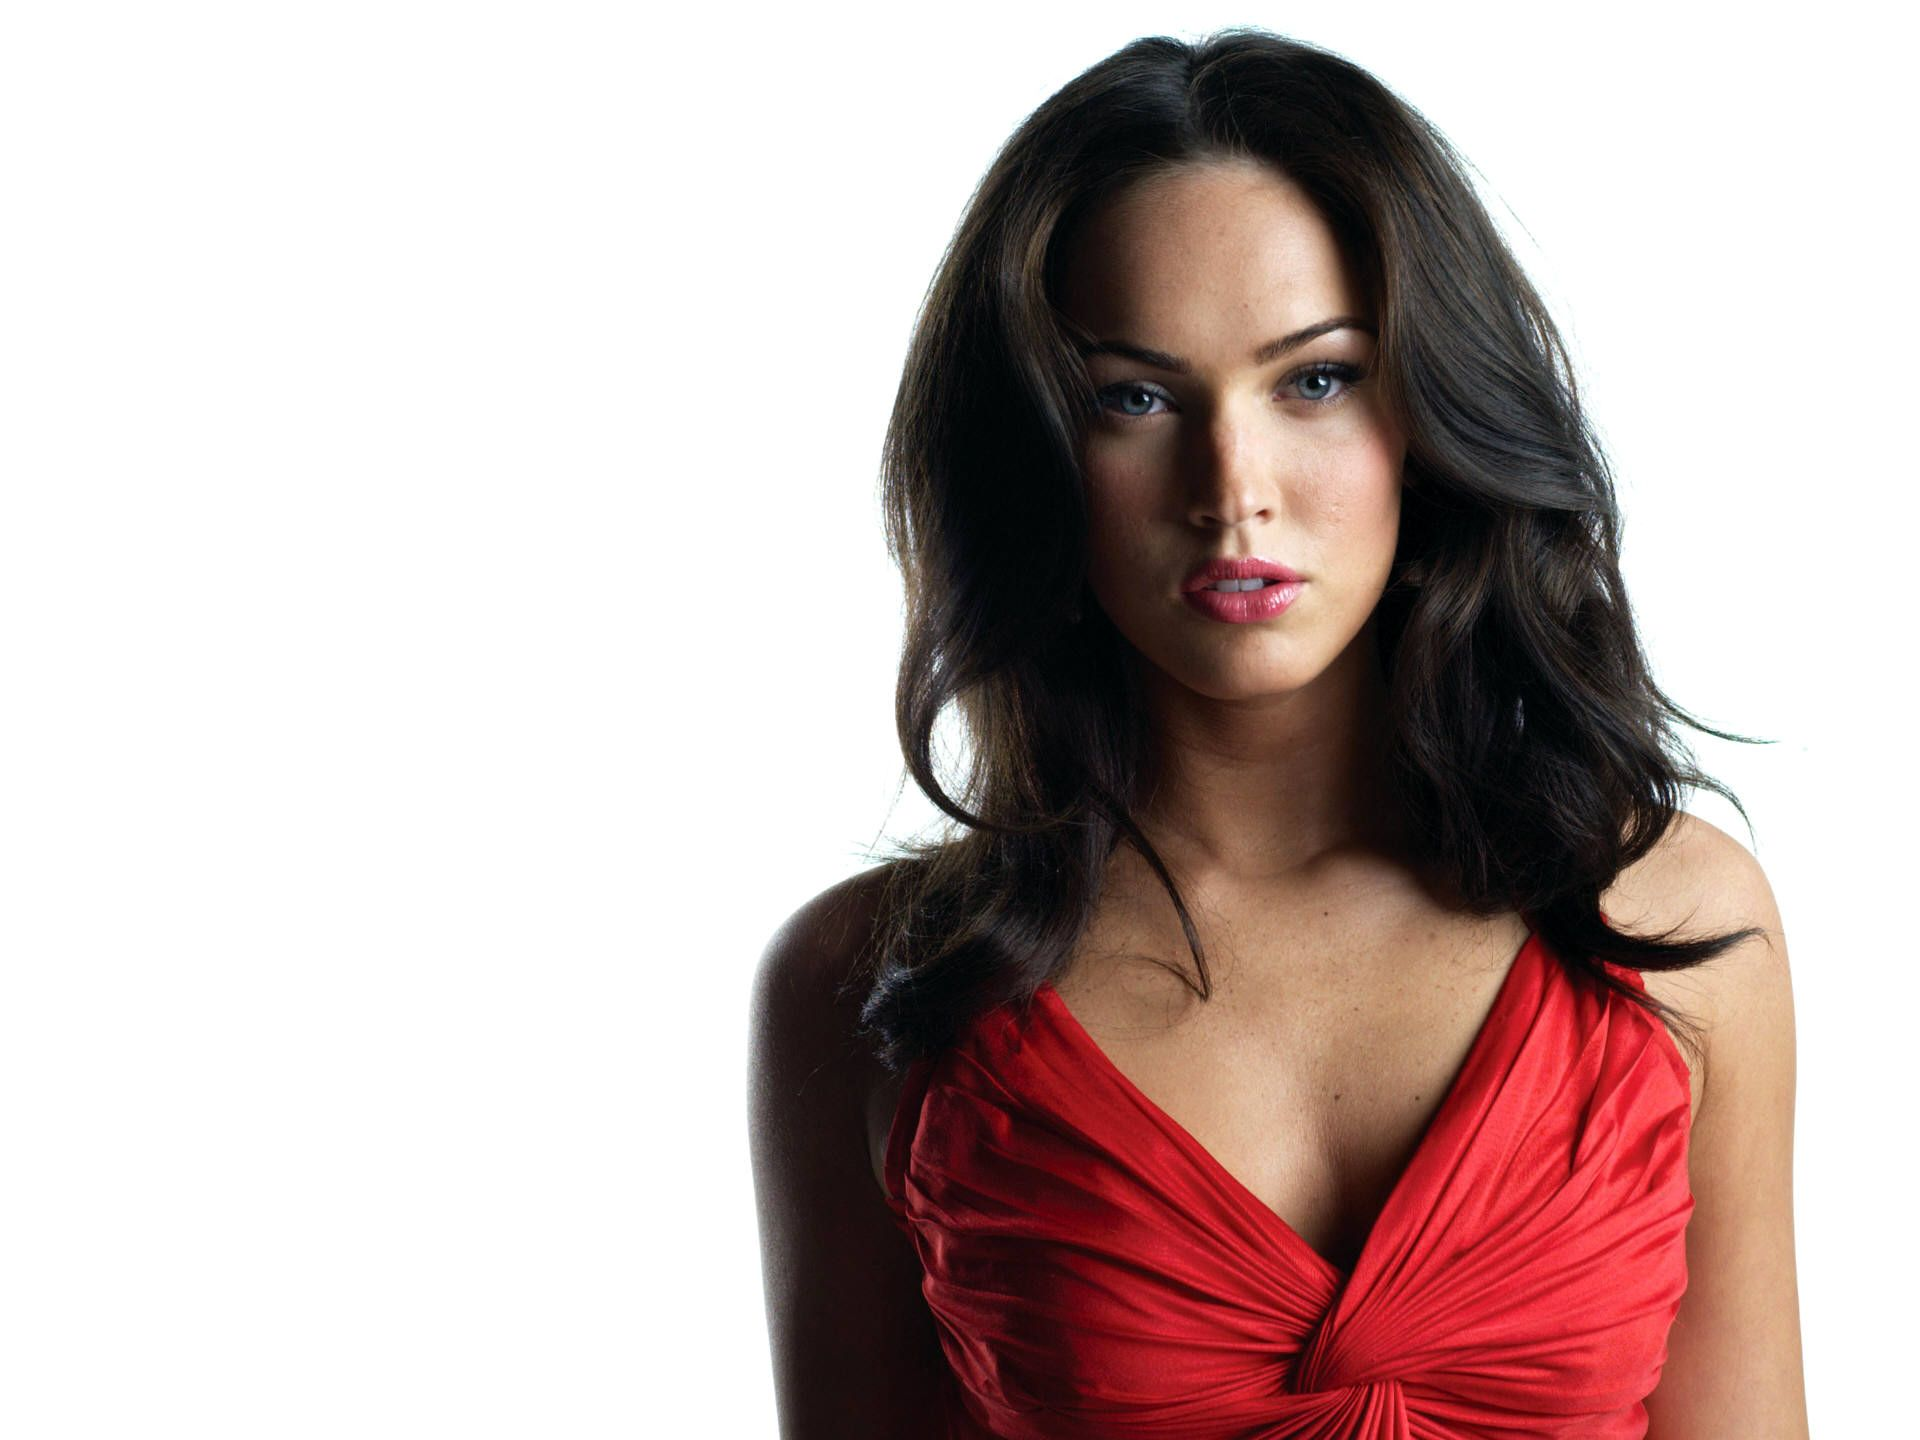 megan-fox-hd-post-in-pixel-of-1920x1440-a-long-red-dress-is-put-on